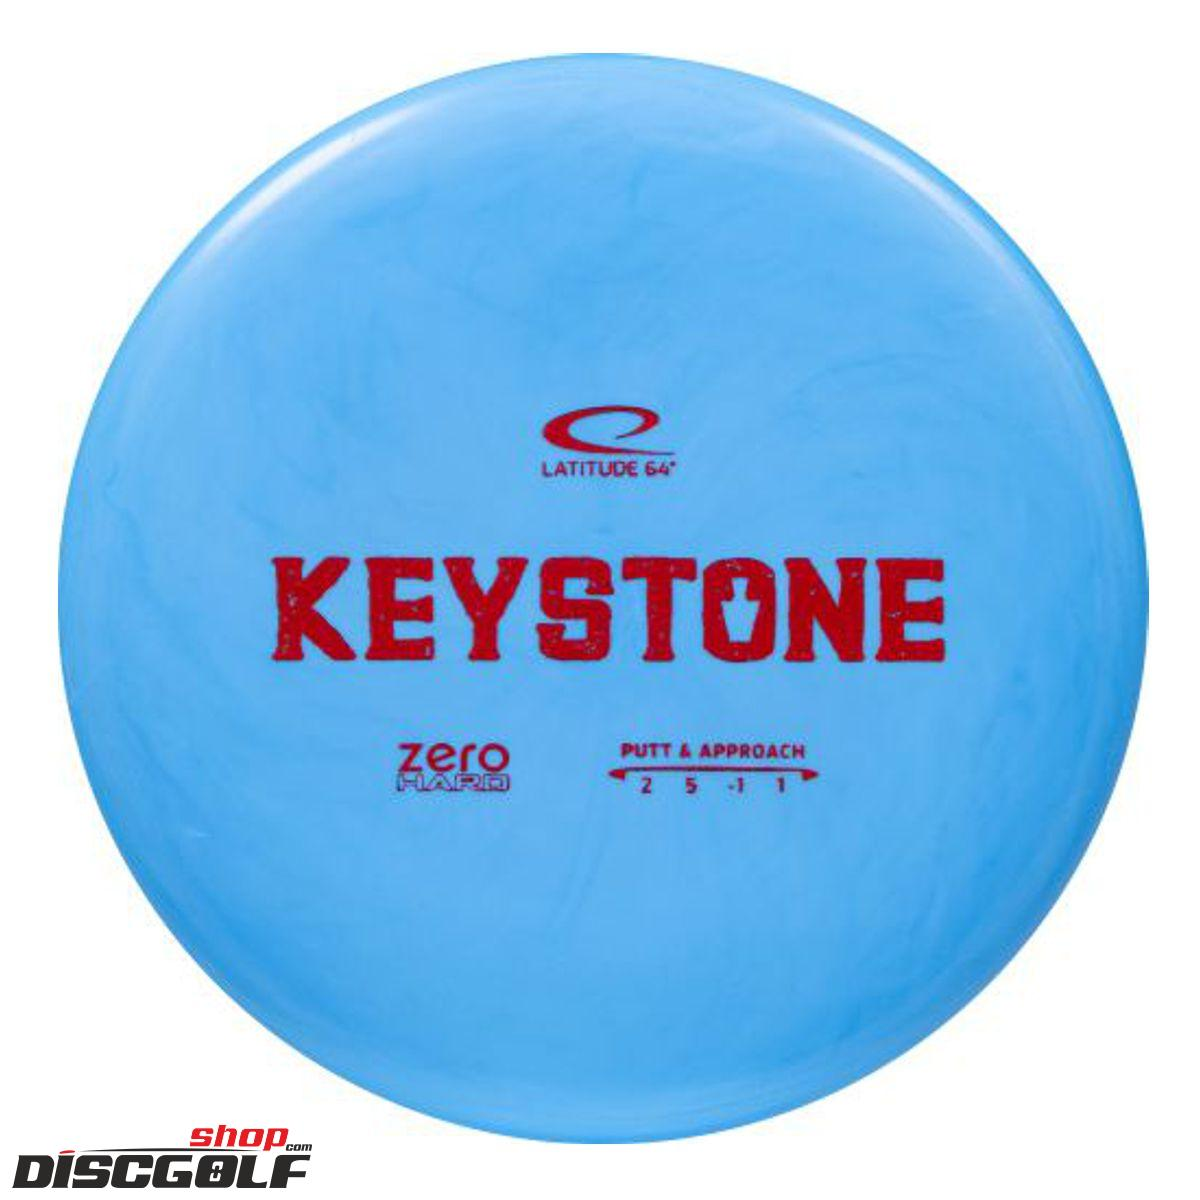 Latitude 64° Keystone Zero Medium 2021